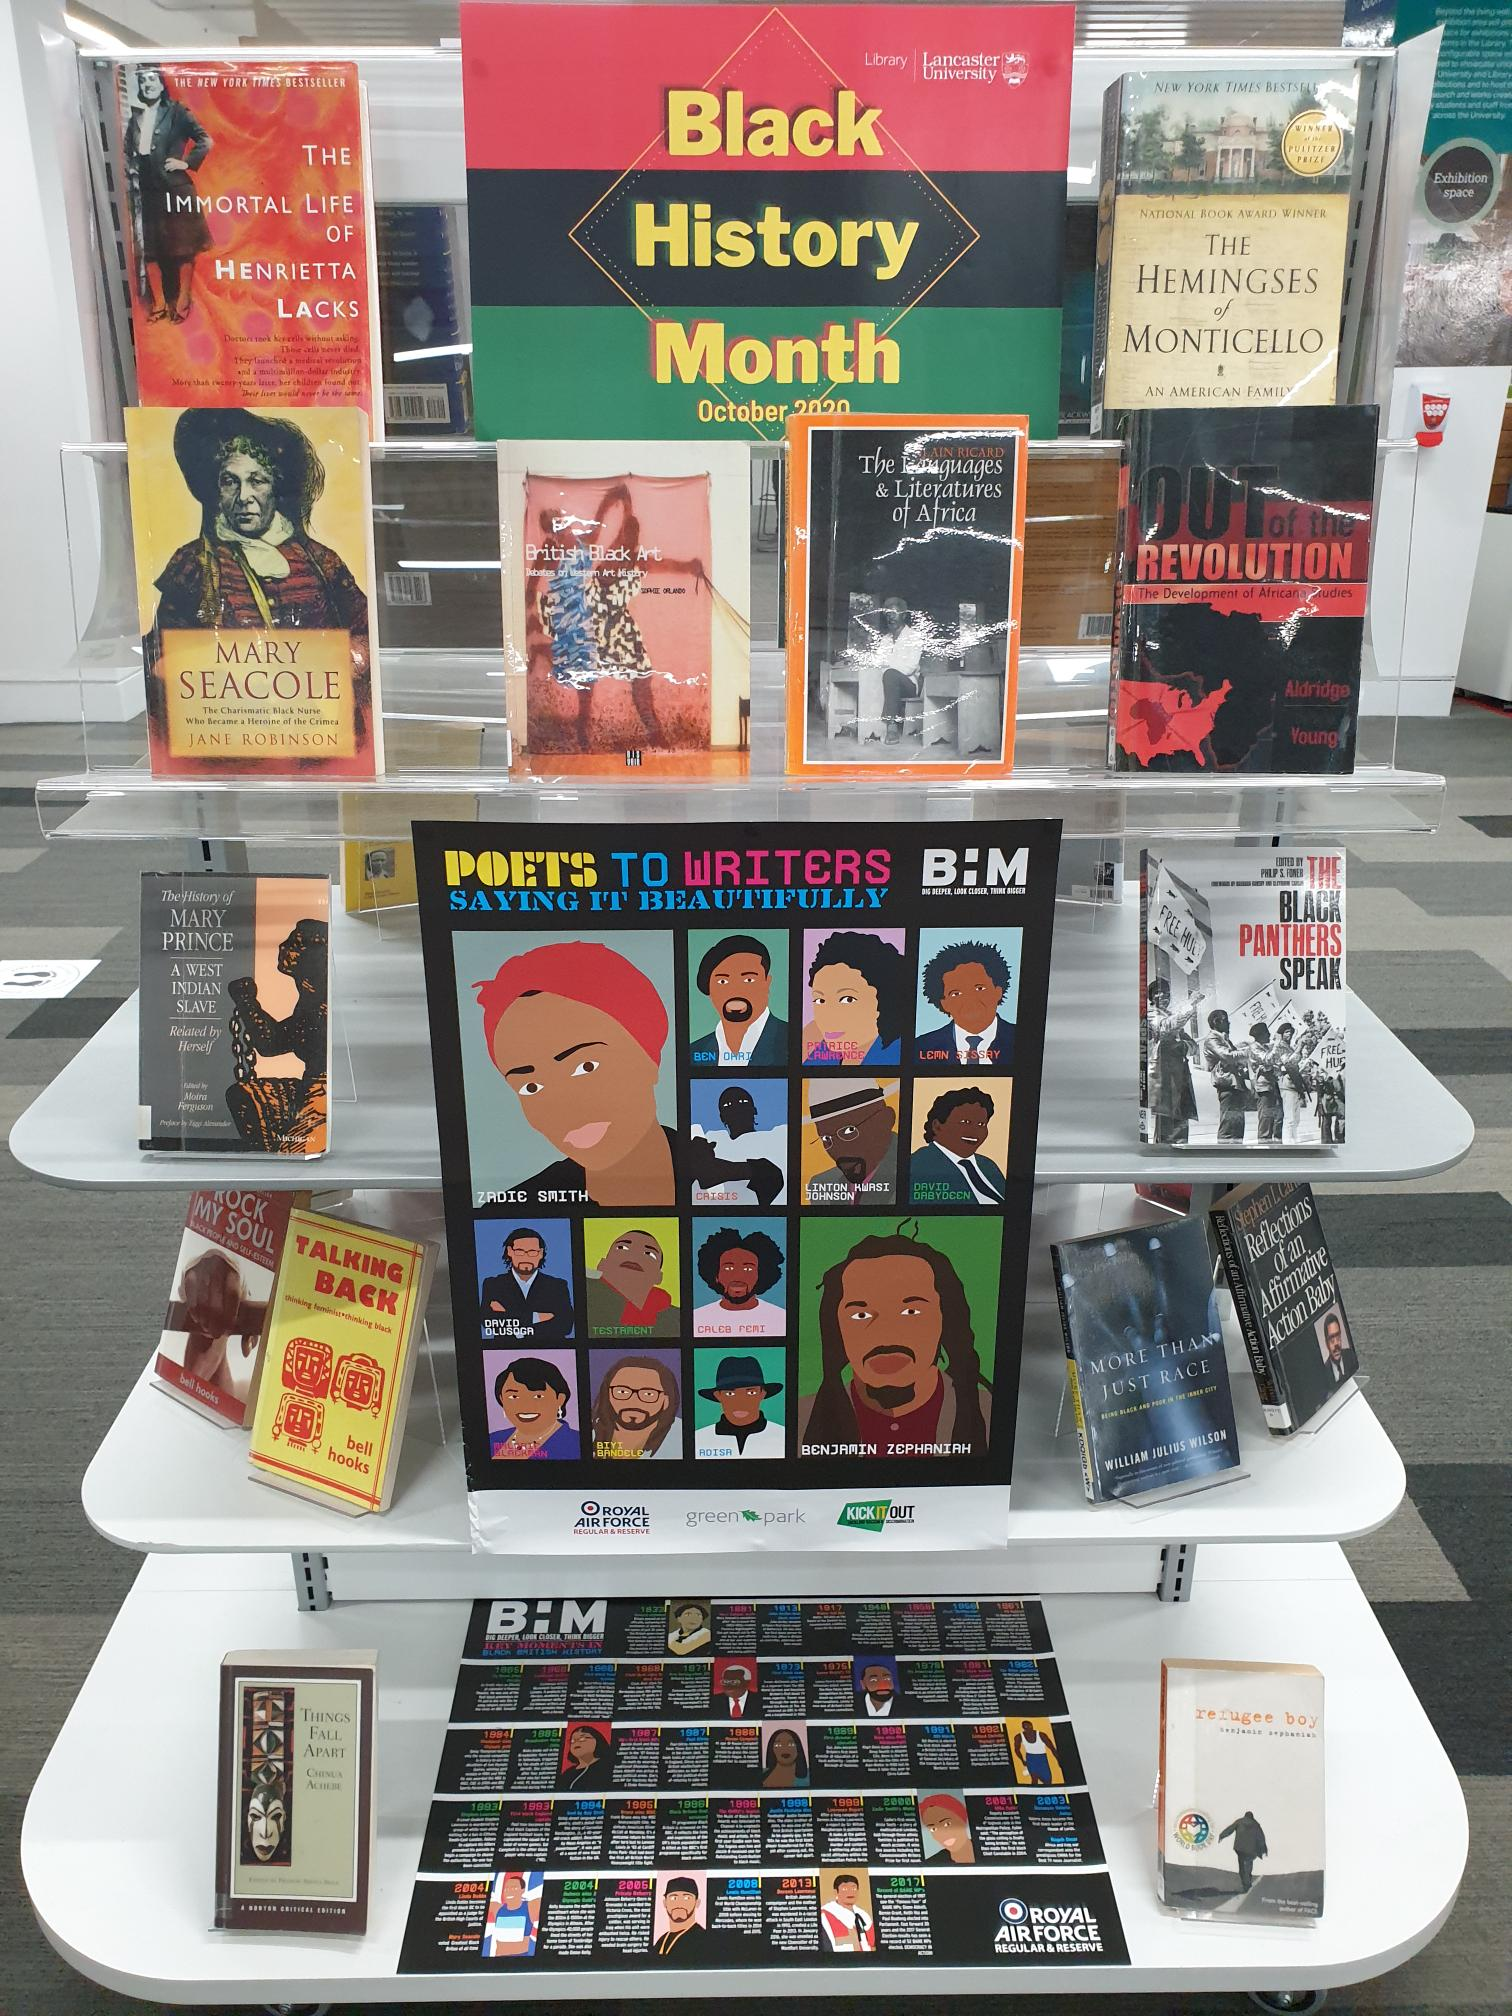 the black history month display in the library, showing a books from the reading list and a poster reading 'Poets to writerssaying it beautifully'